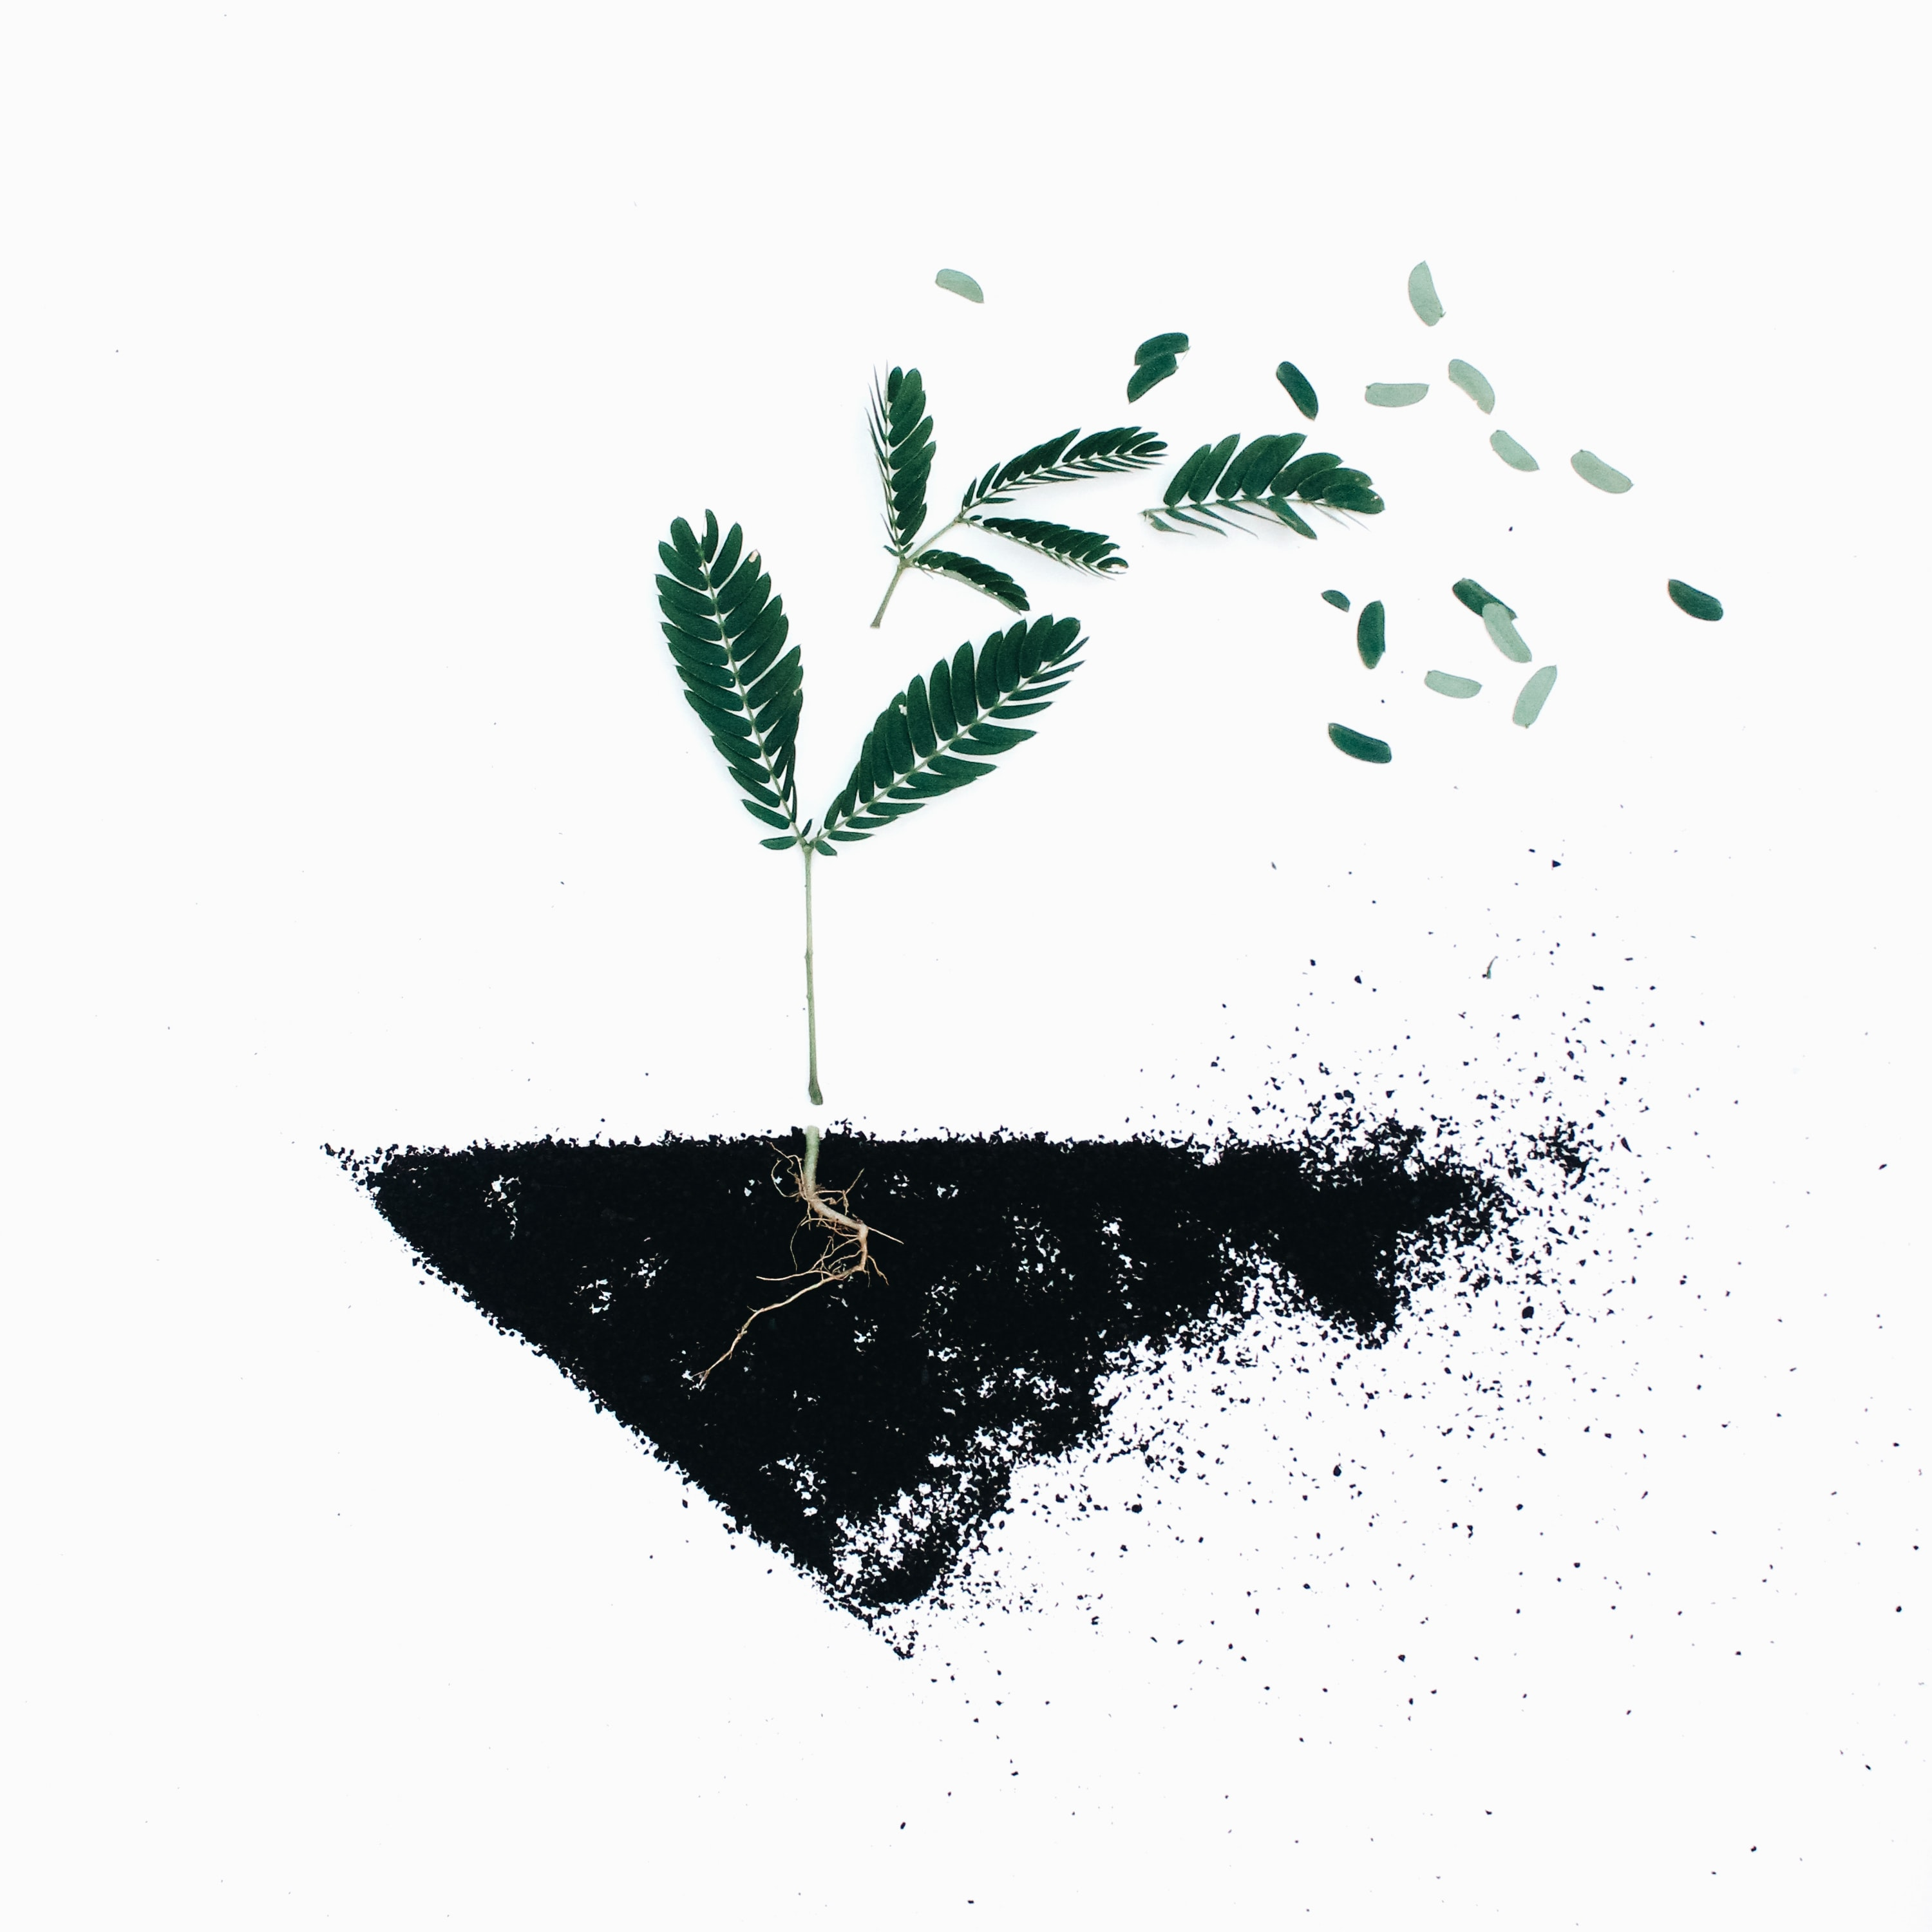 green leaf plants on black soil illustration